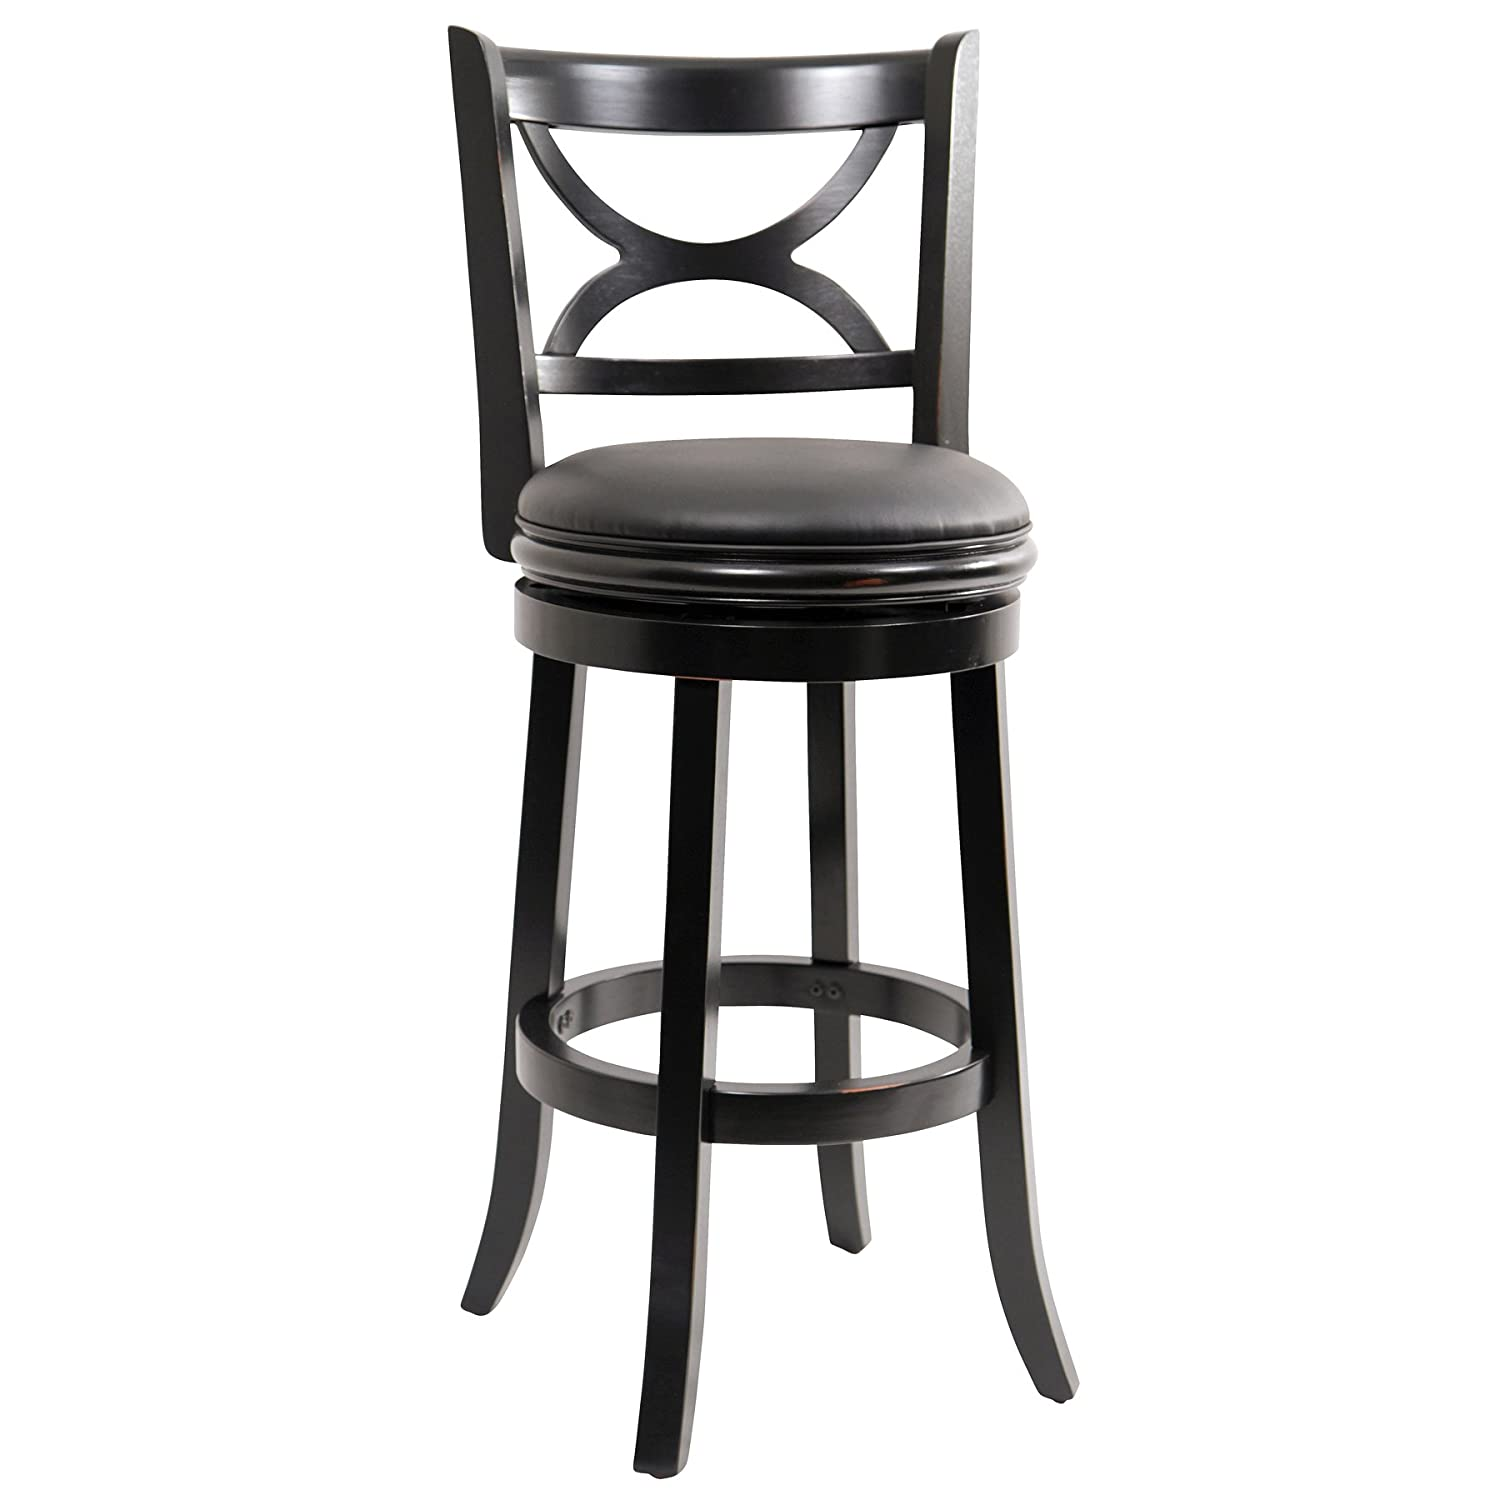 Cheap Bar Stools with Back 2013 : 71AlawkMmfLSL1500 from www.squidoo.com size 1500 x 1500 jpeg 111kB